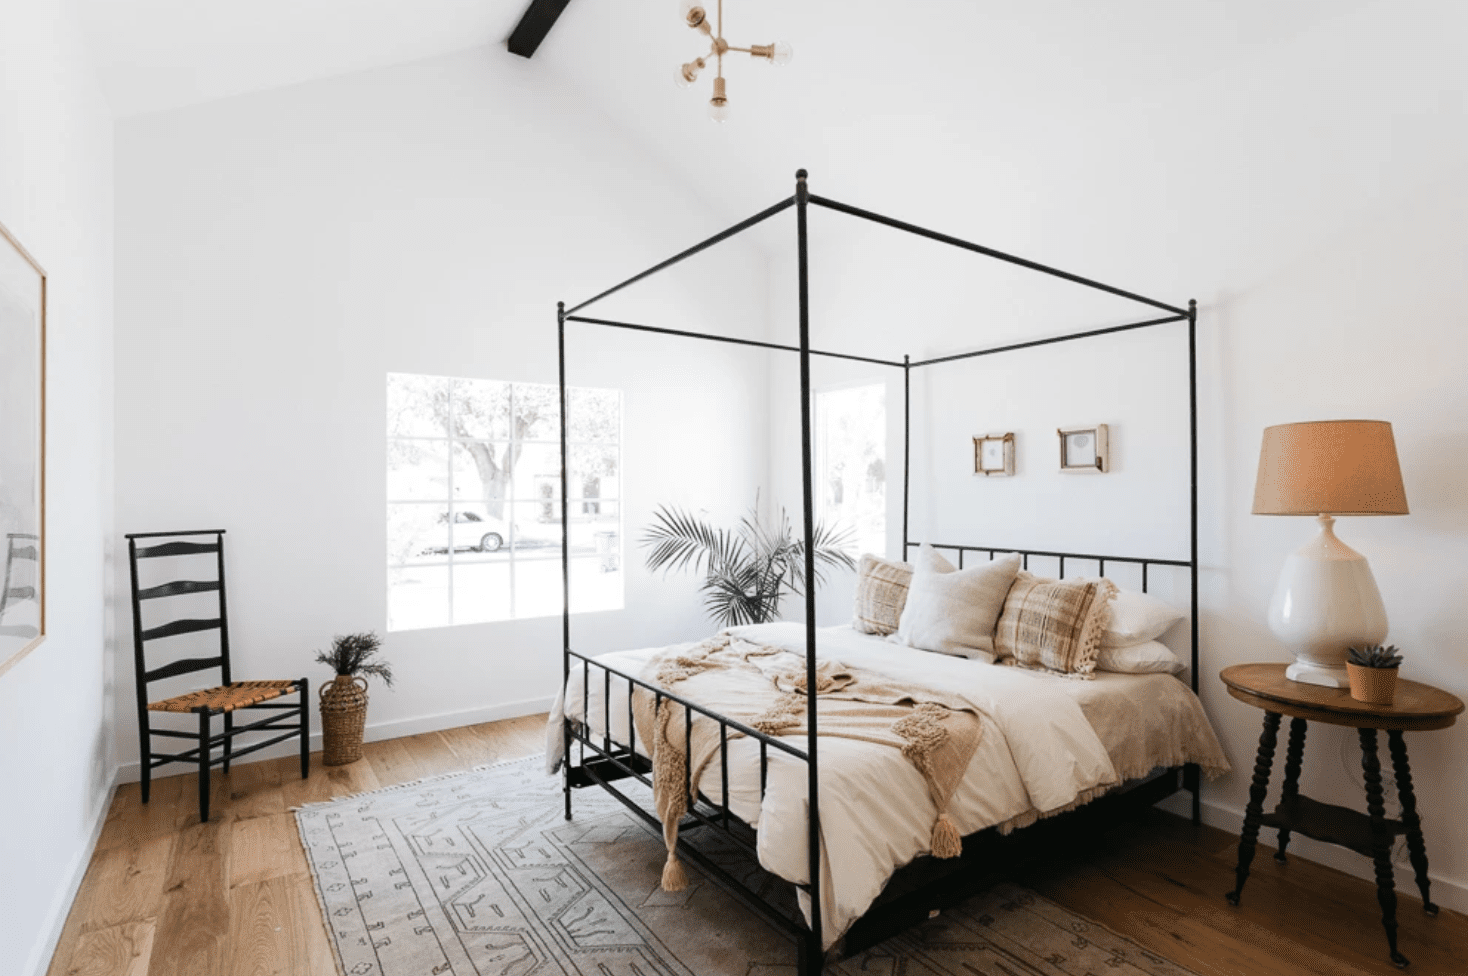 A canopy bed topped with ivory pillows and blankets